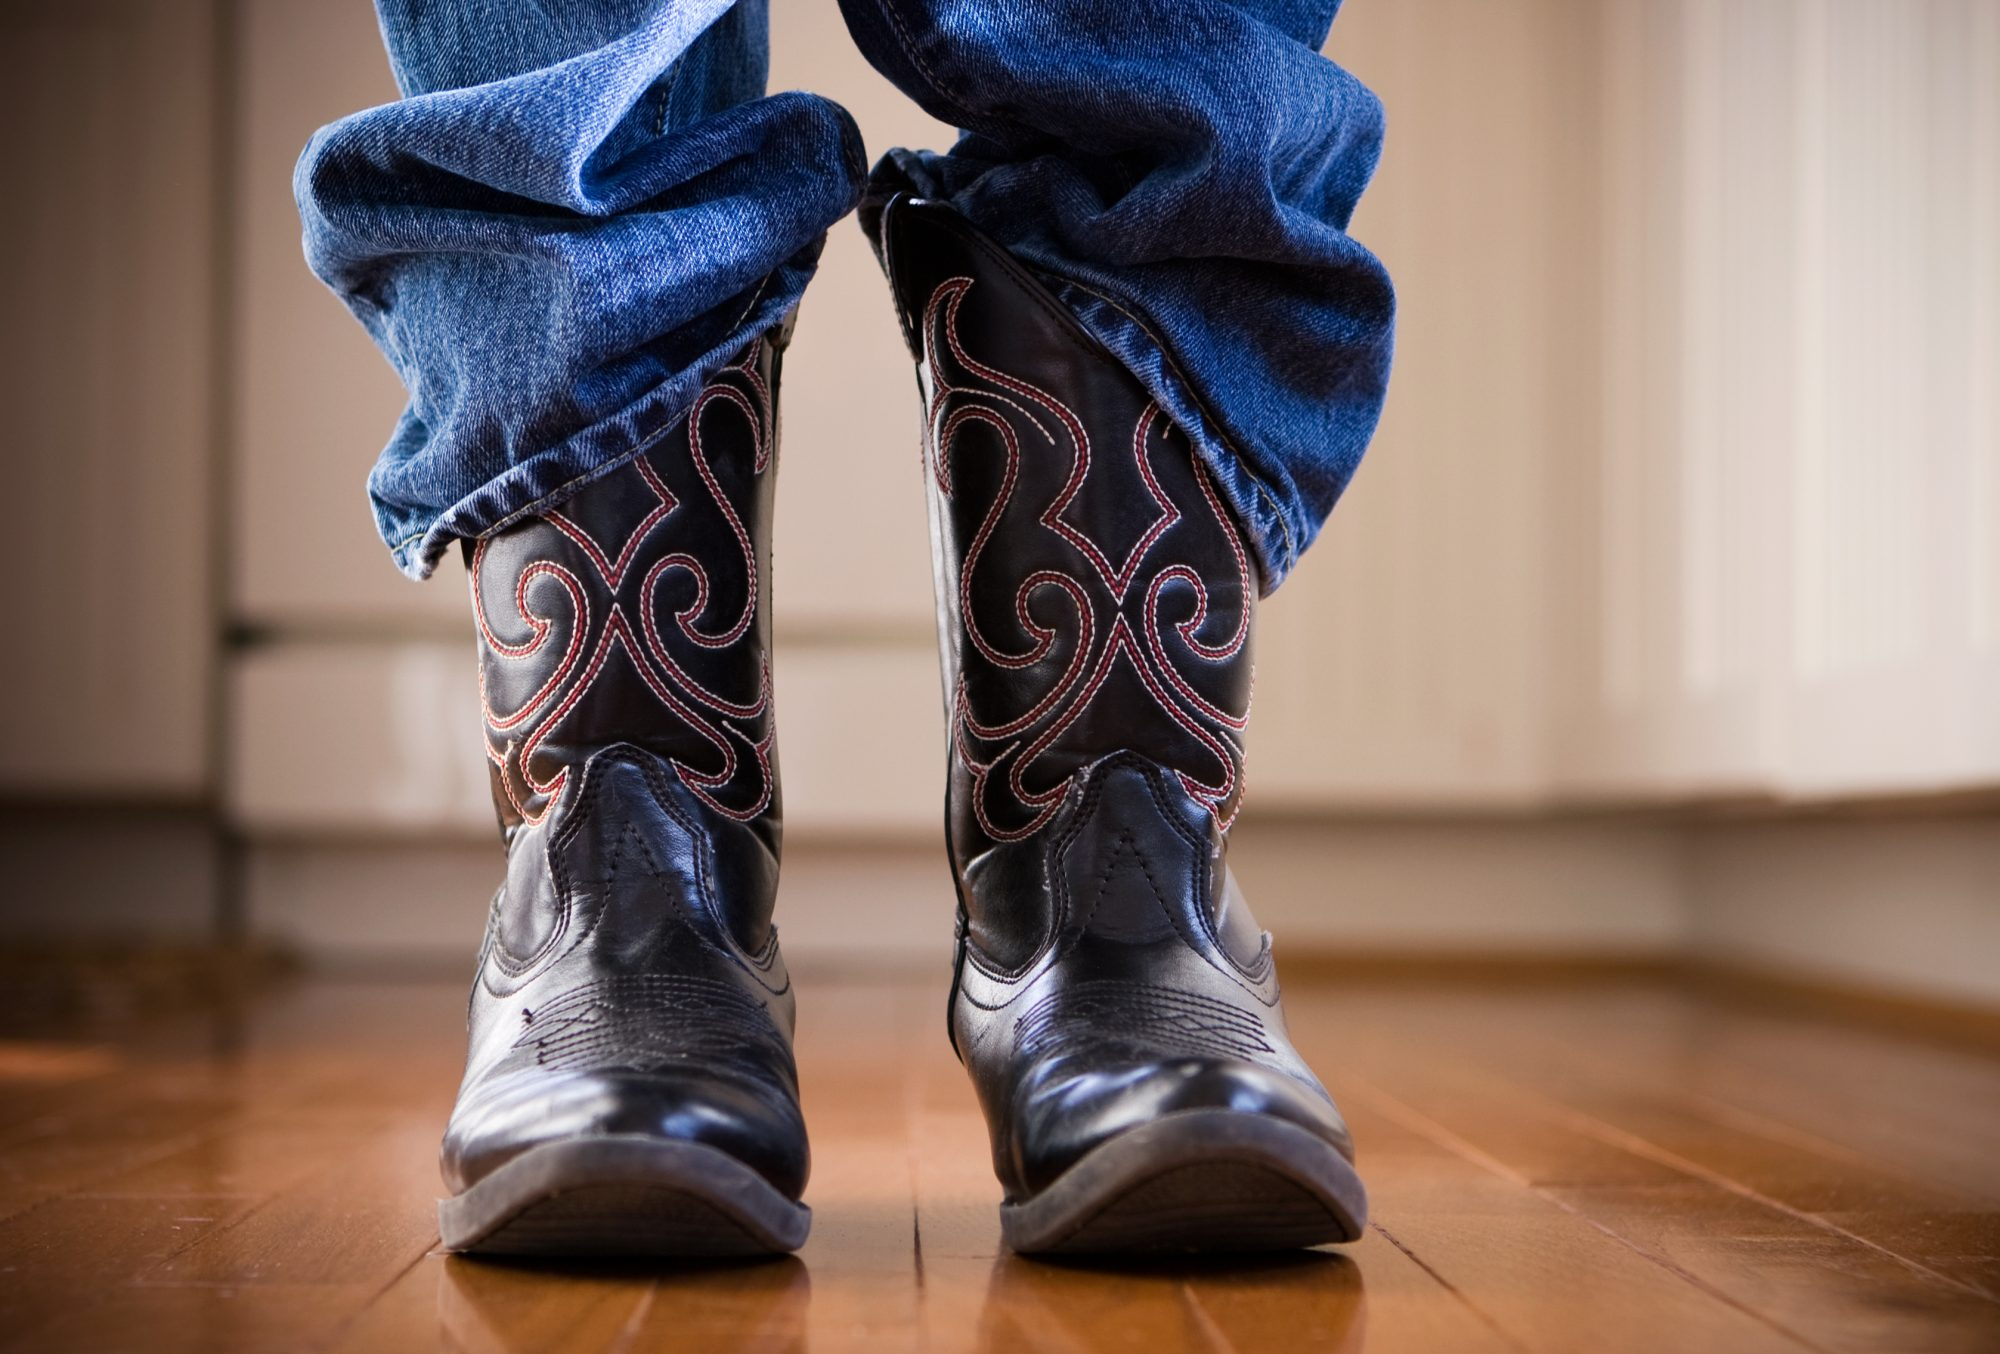 Young Boy in Cowboy Boots